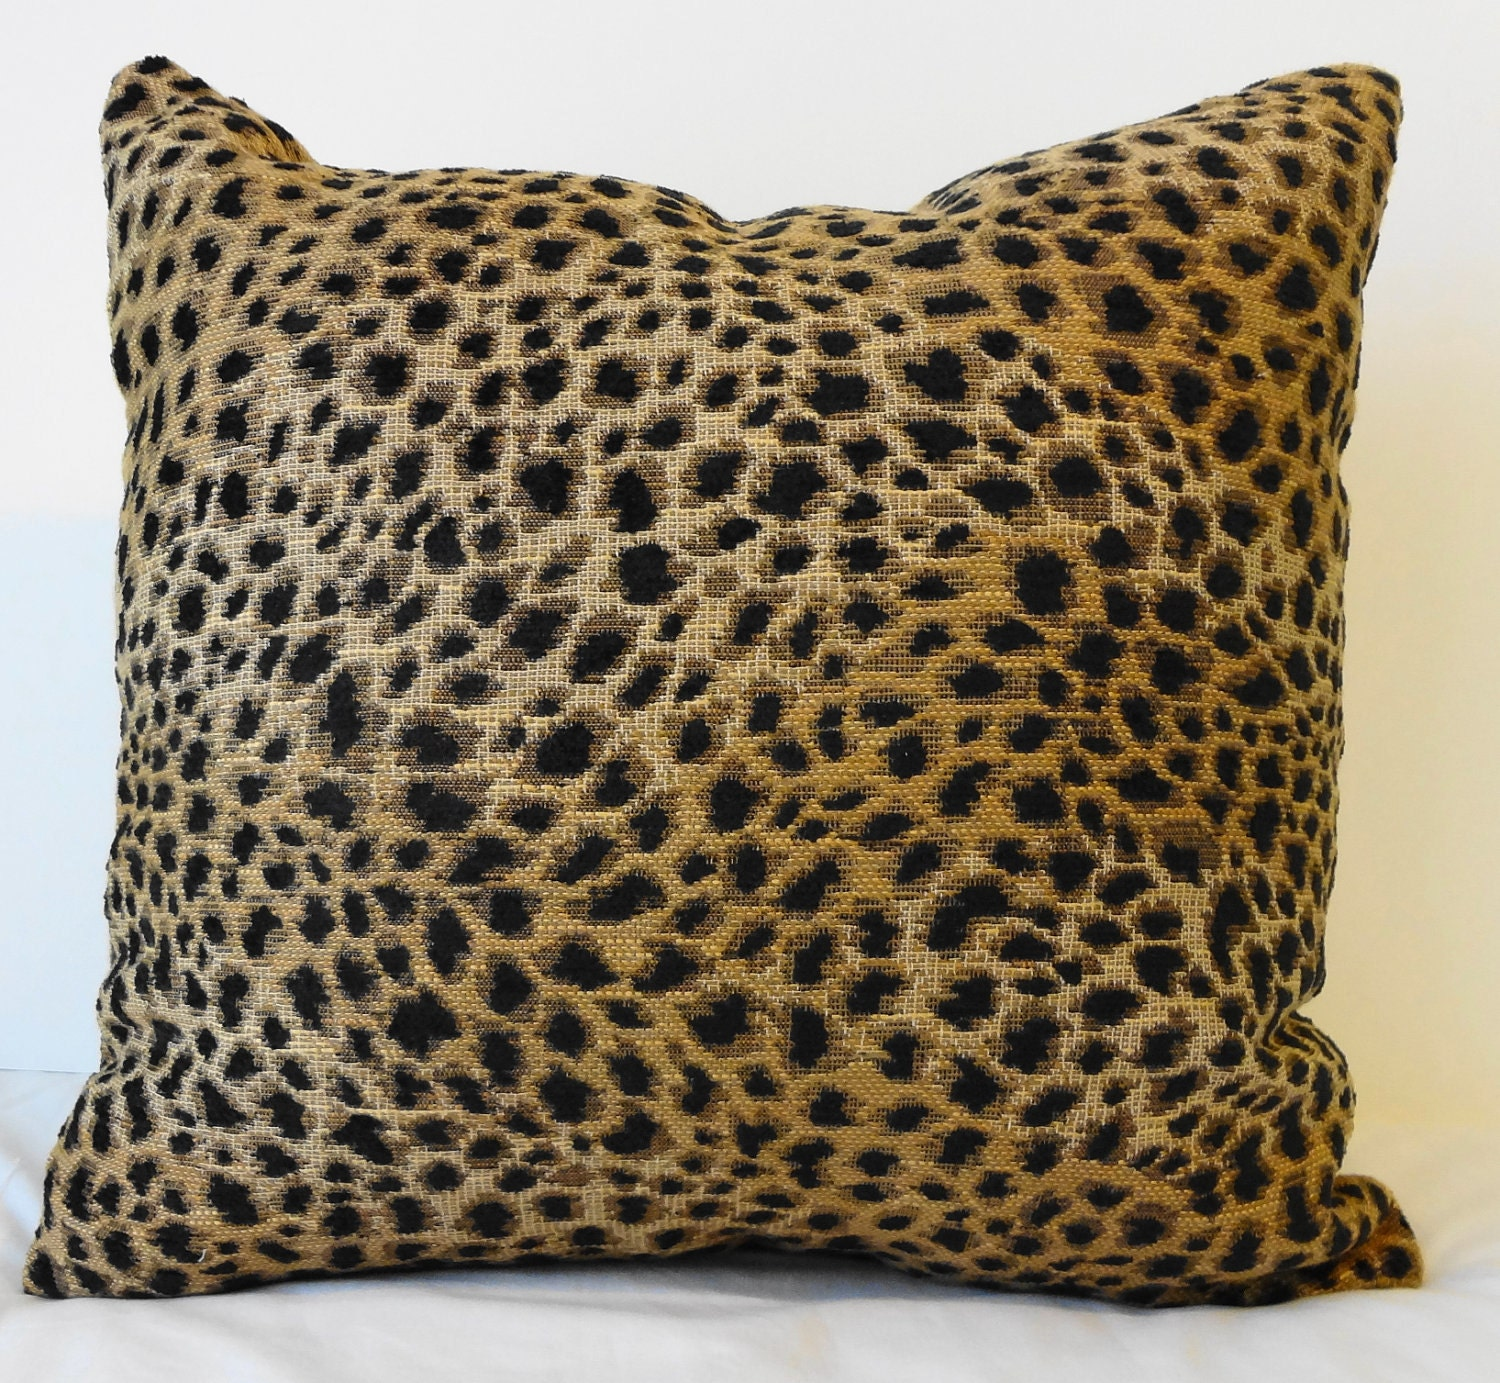 Animal Print Sofa Pillows : Leopard Print Decorative Pillow Cover Cheetah by pillows4fun